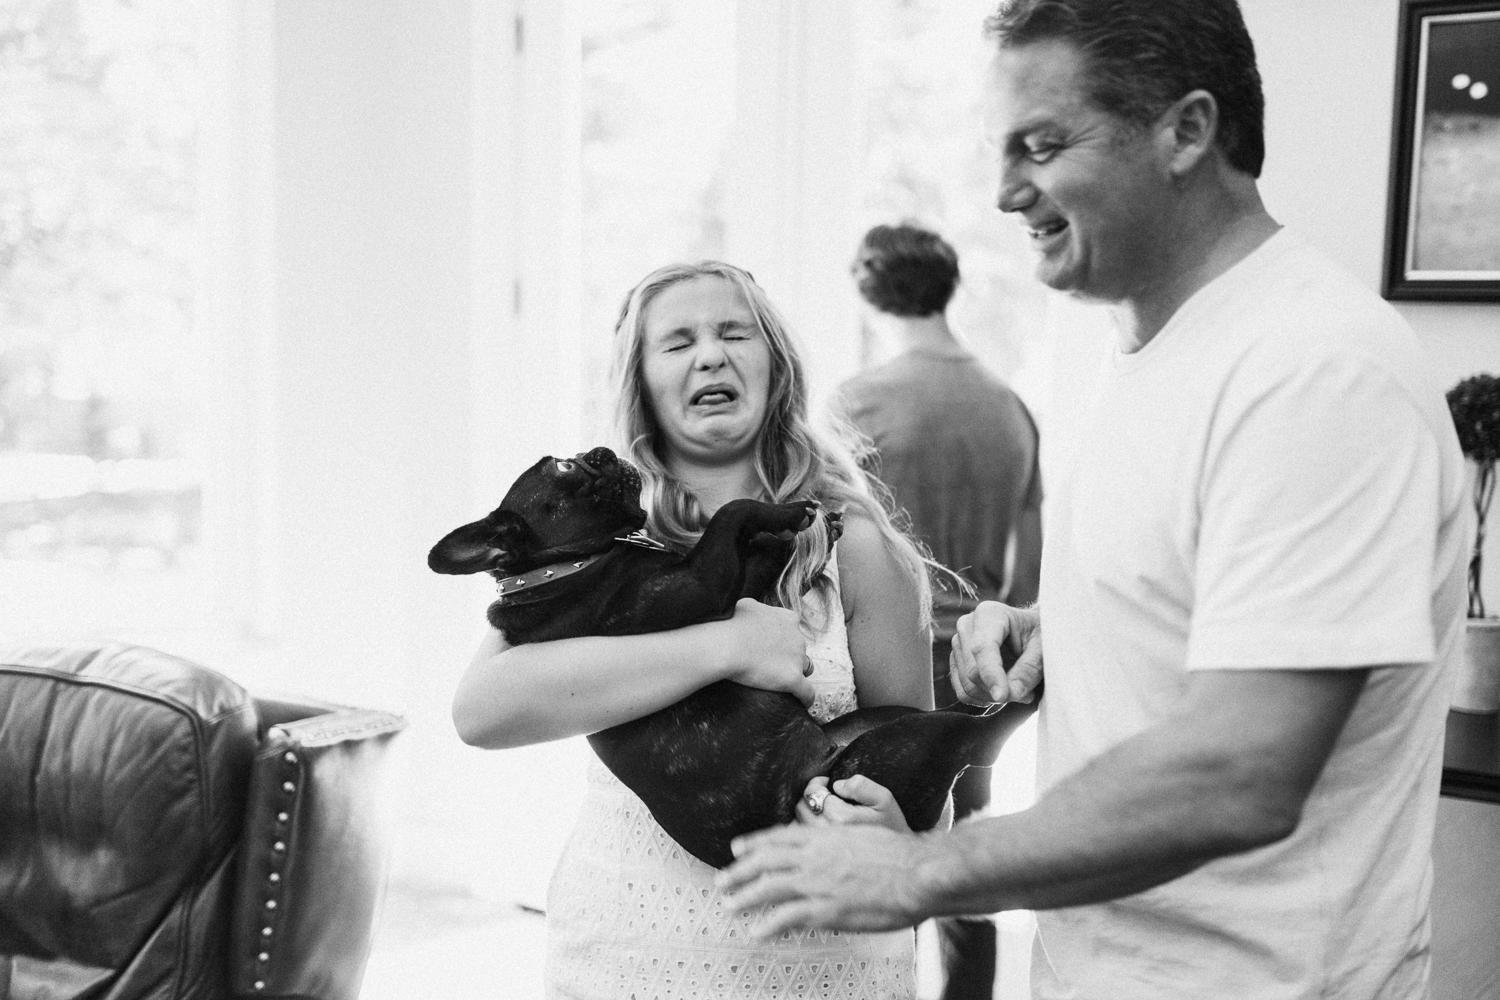 candid-photo-of-girl-making-funny-face-while-holding-pug-dog-with-father-during-in-home-session-with-jen-fairchild-photography-in-salt-lake-city-utah